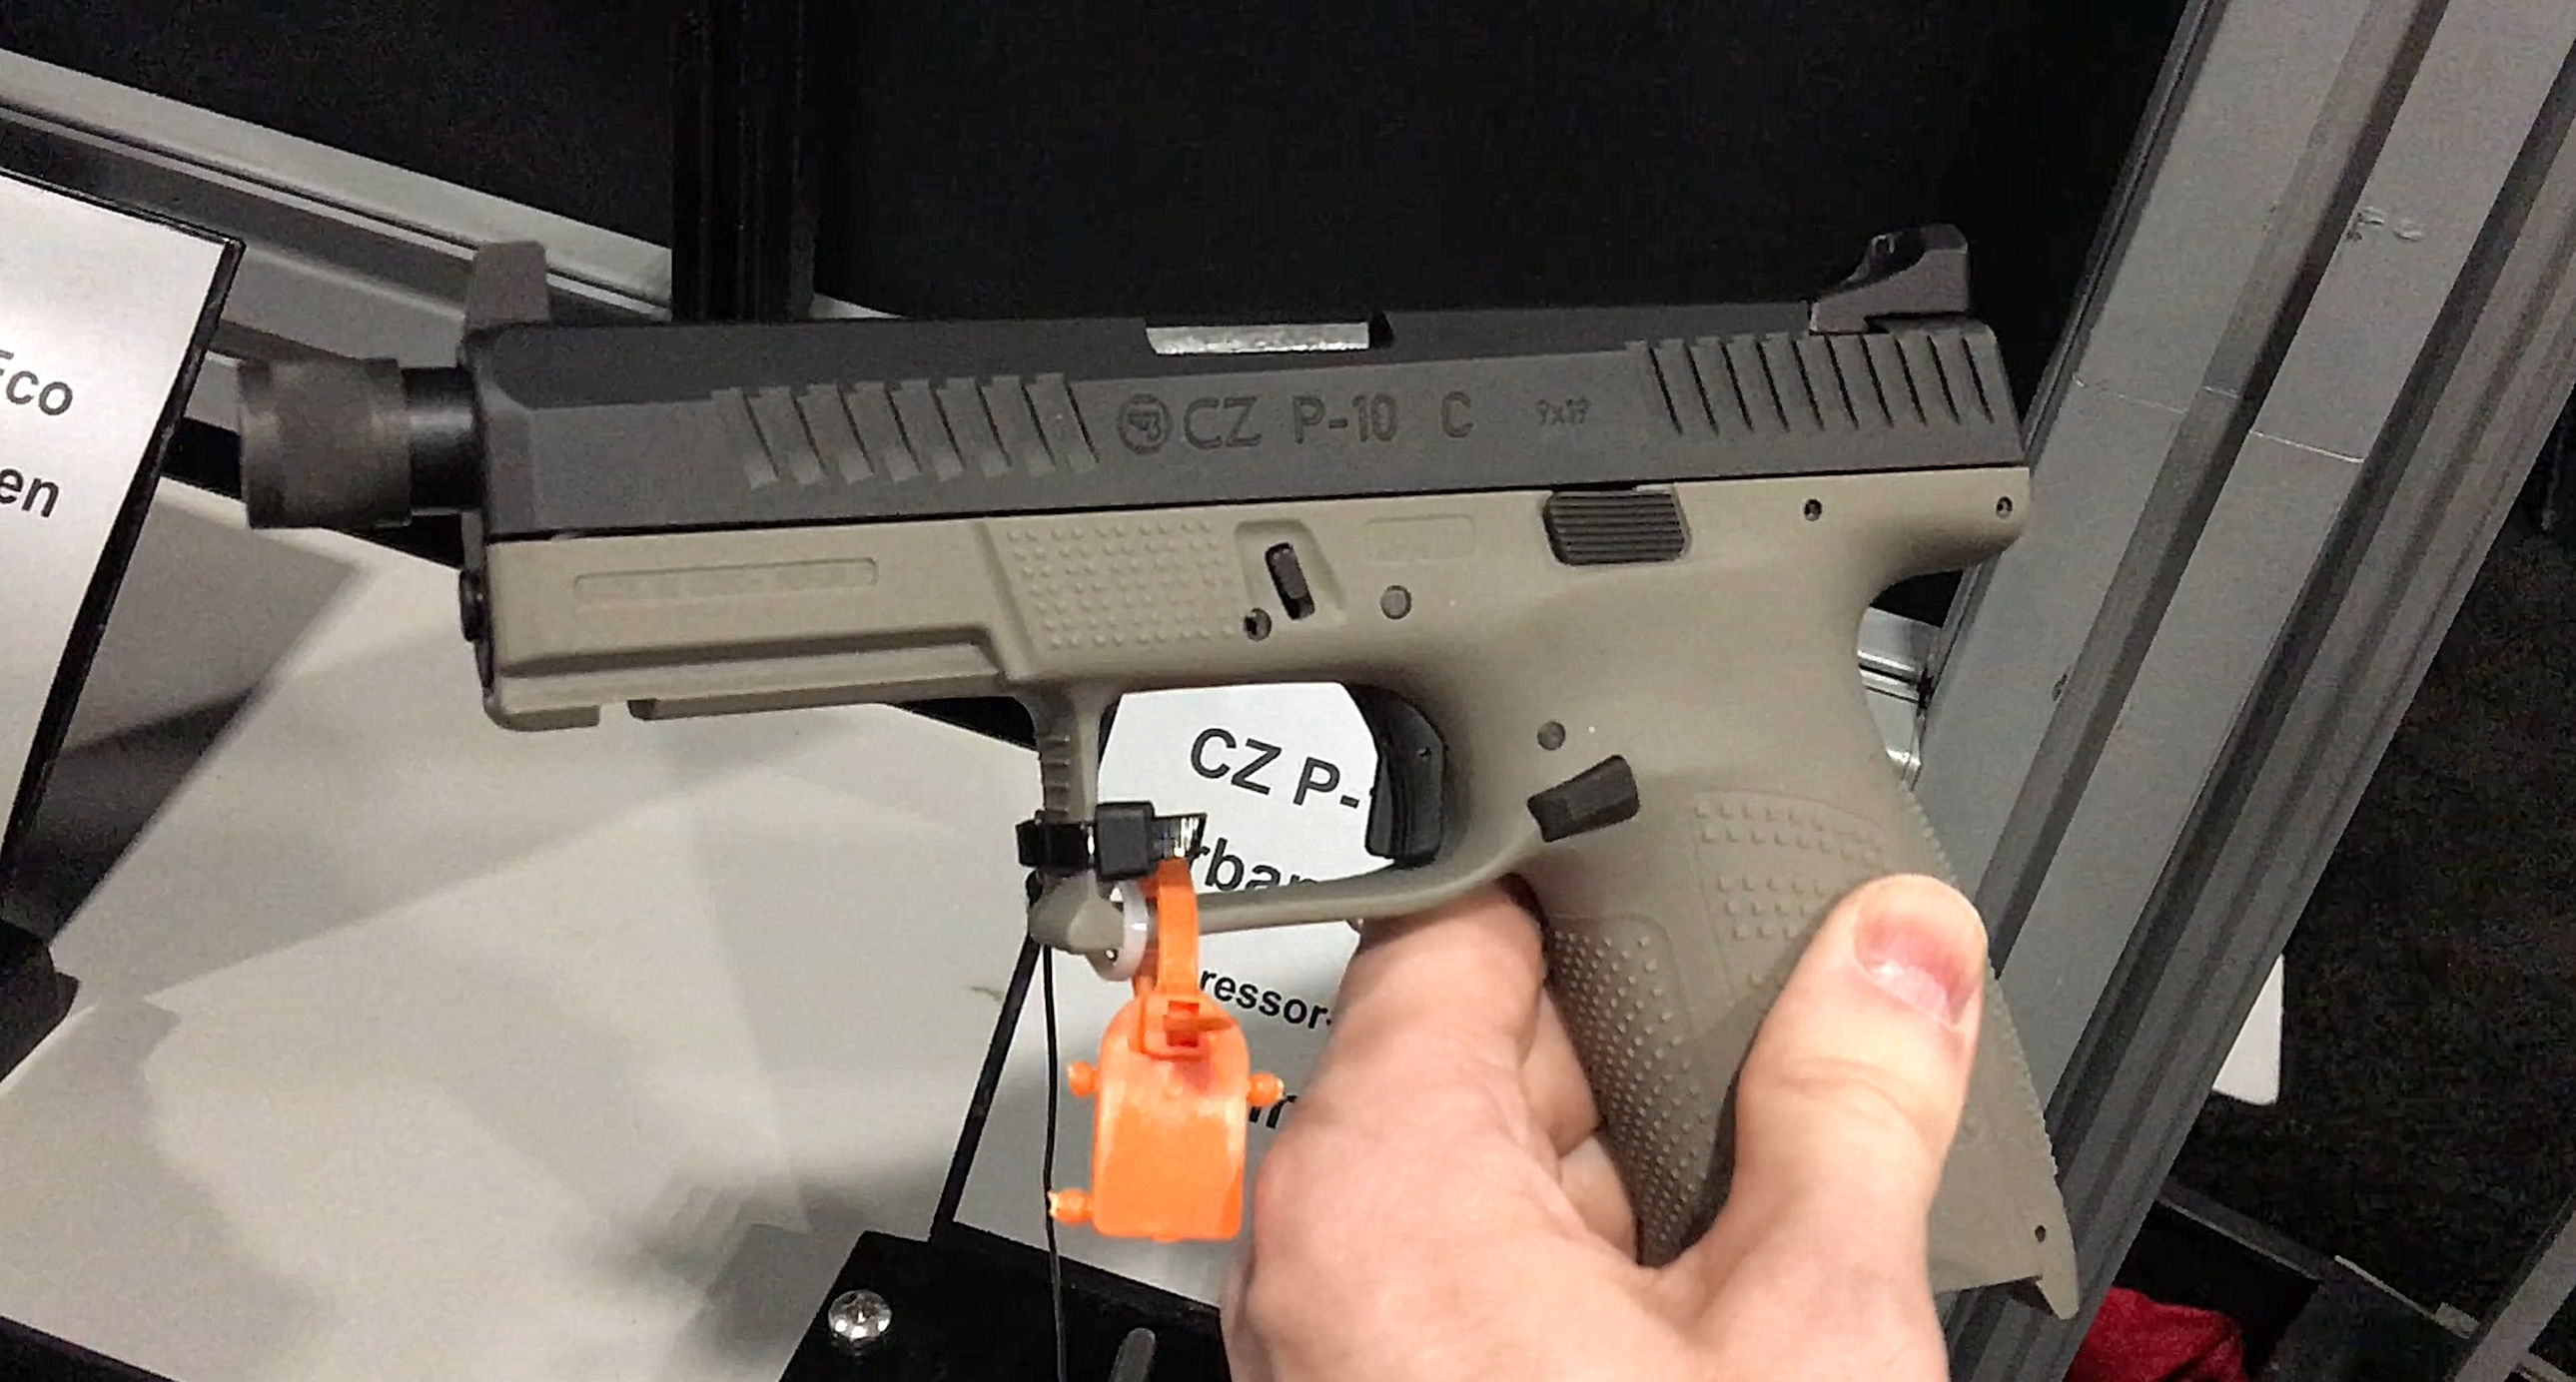 CZ P-10 C Suppressor-Ready Striker-Fired 9mm Compact and Dan